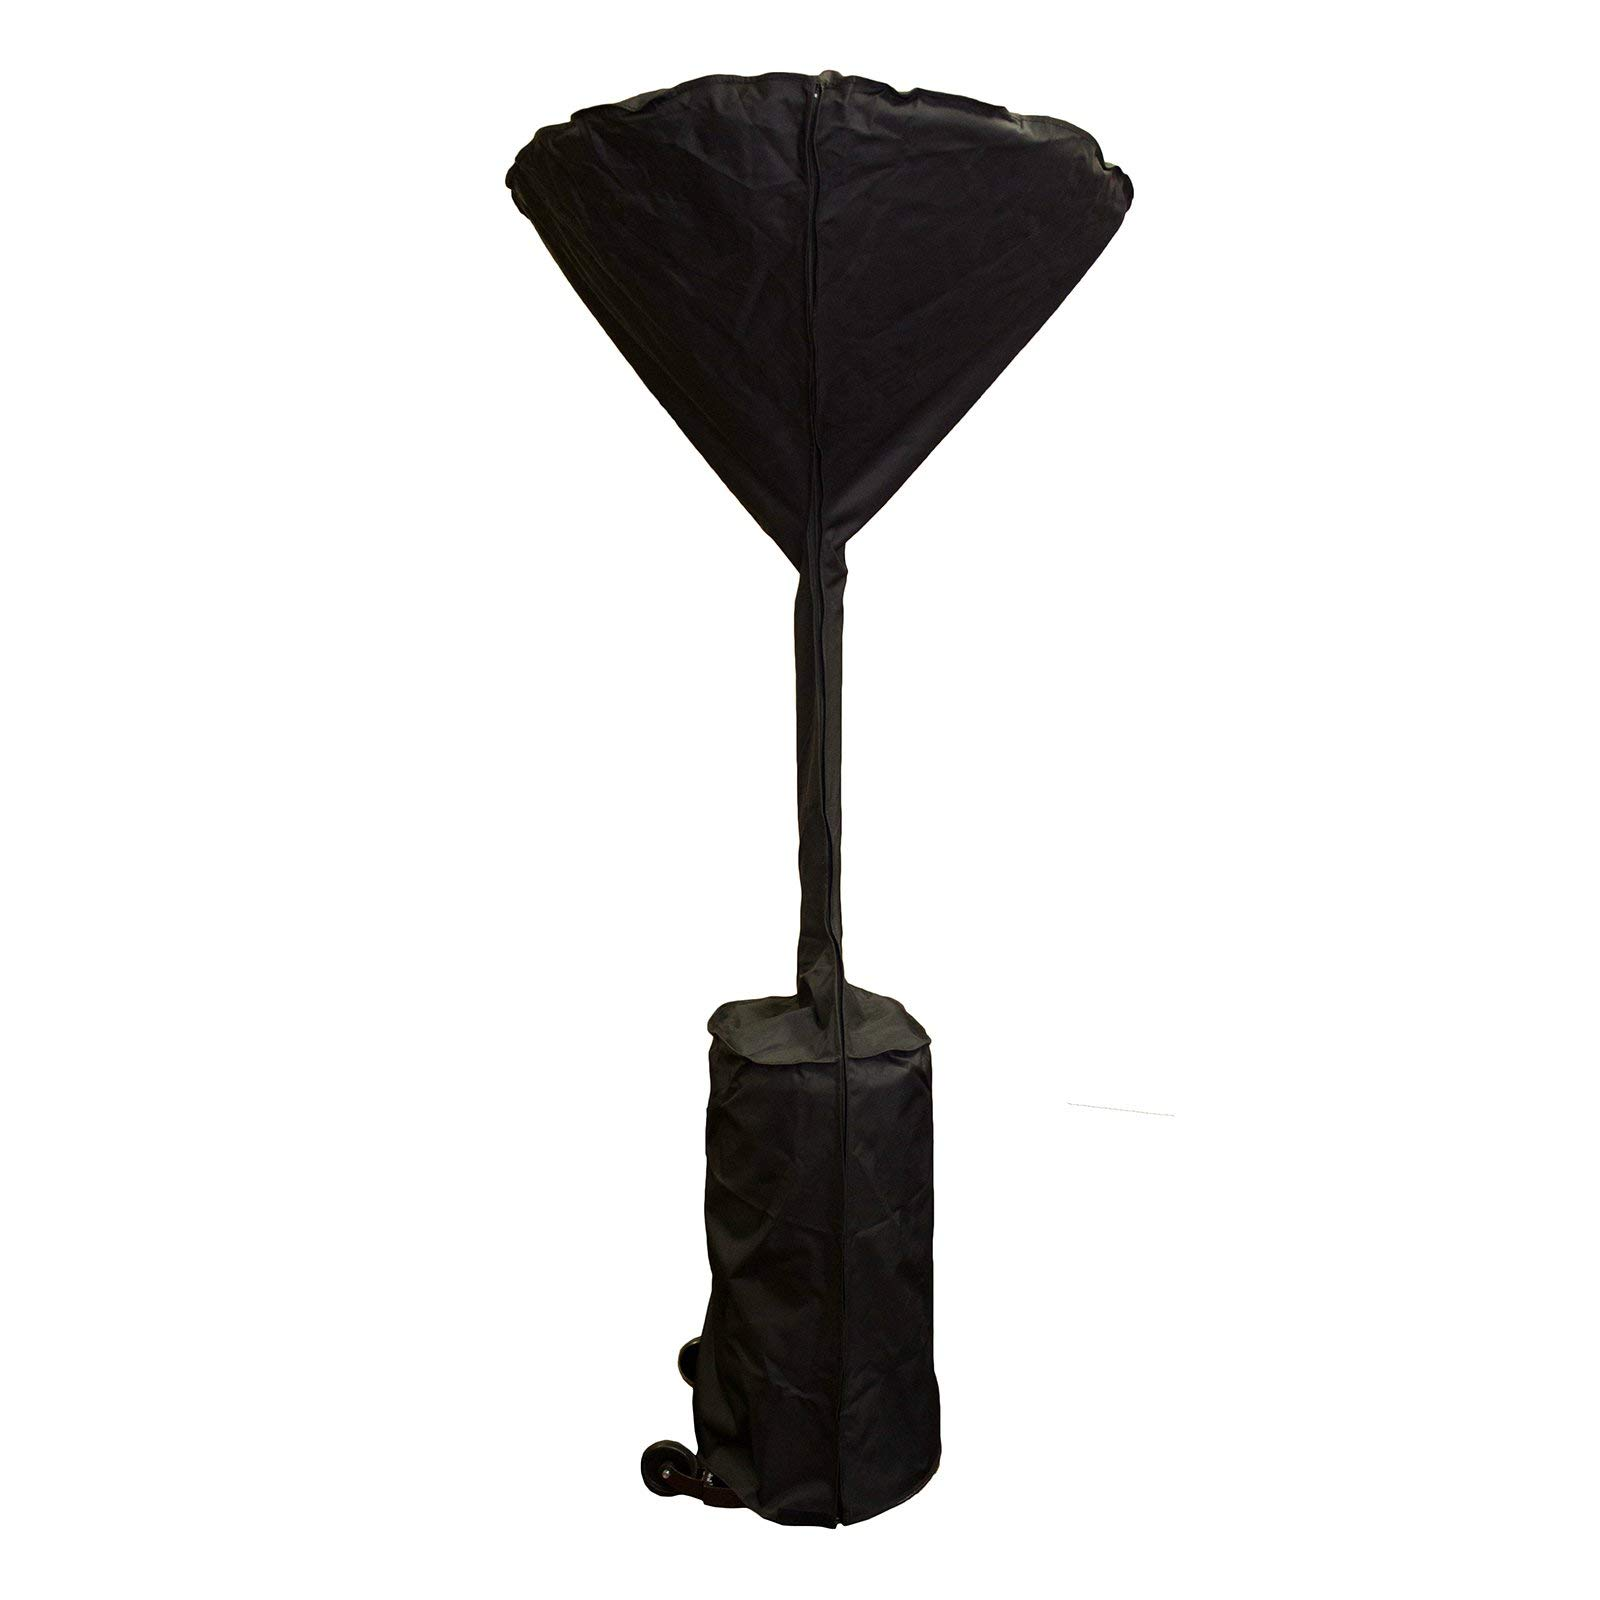 Jur_Global Patio Commercial Patio Heater Cover in Black by Jur_Global